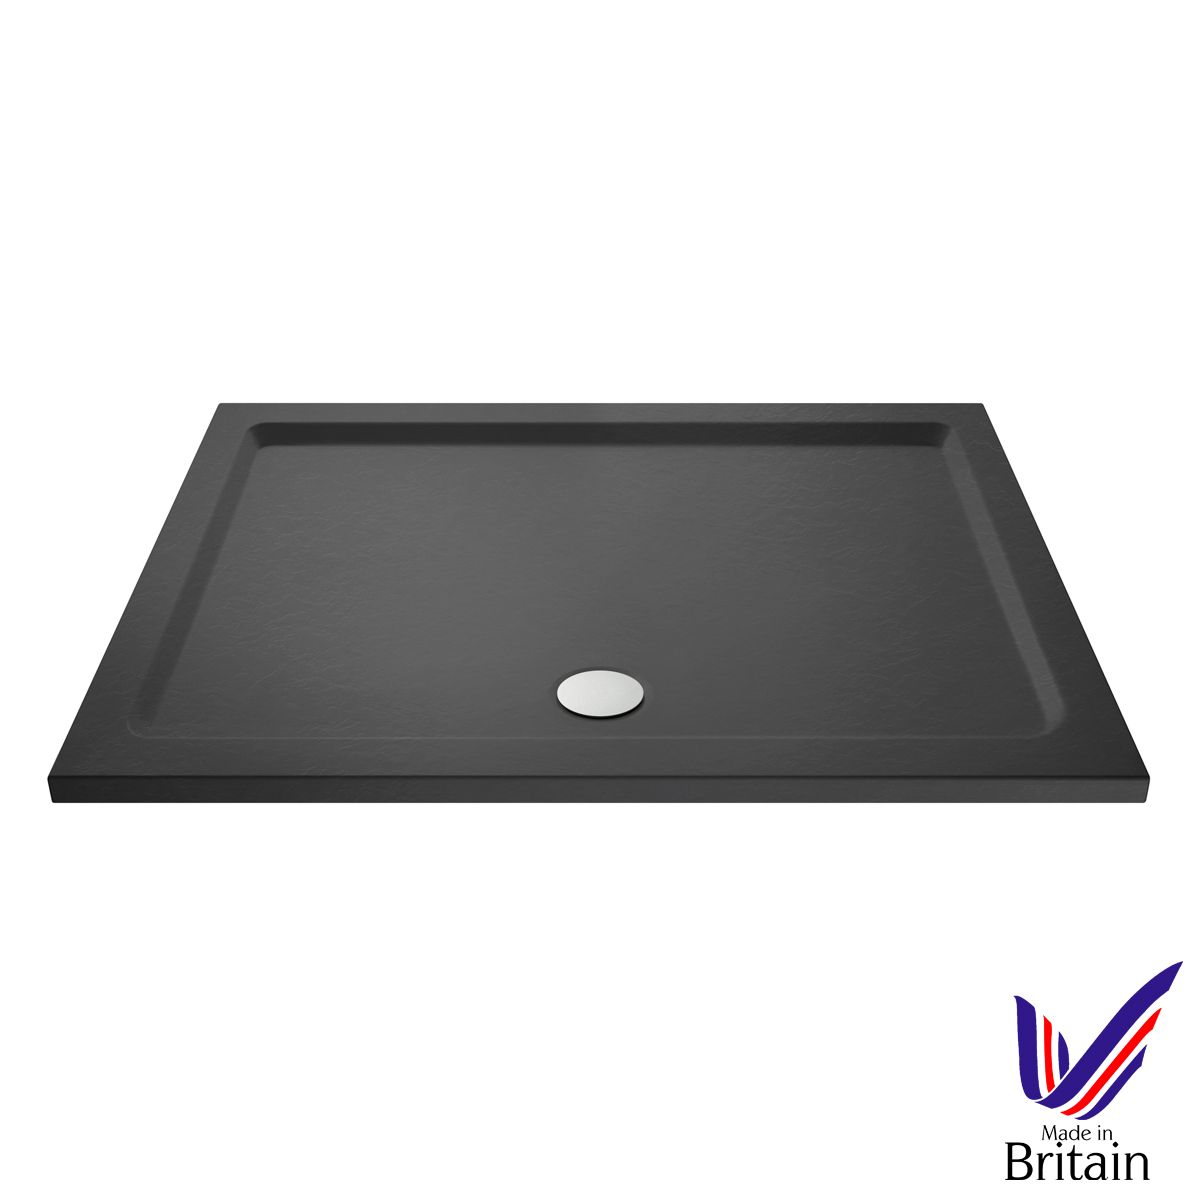 1400 x 800 Shower Tray Slate Grey Rectangular Low Profile by Pearlstone